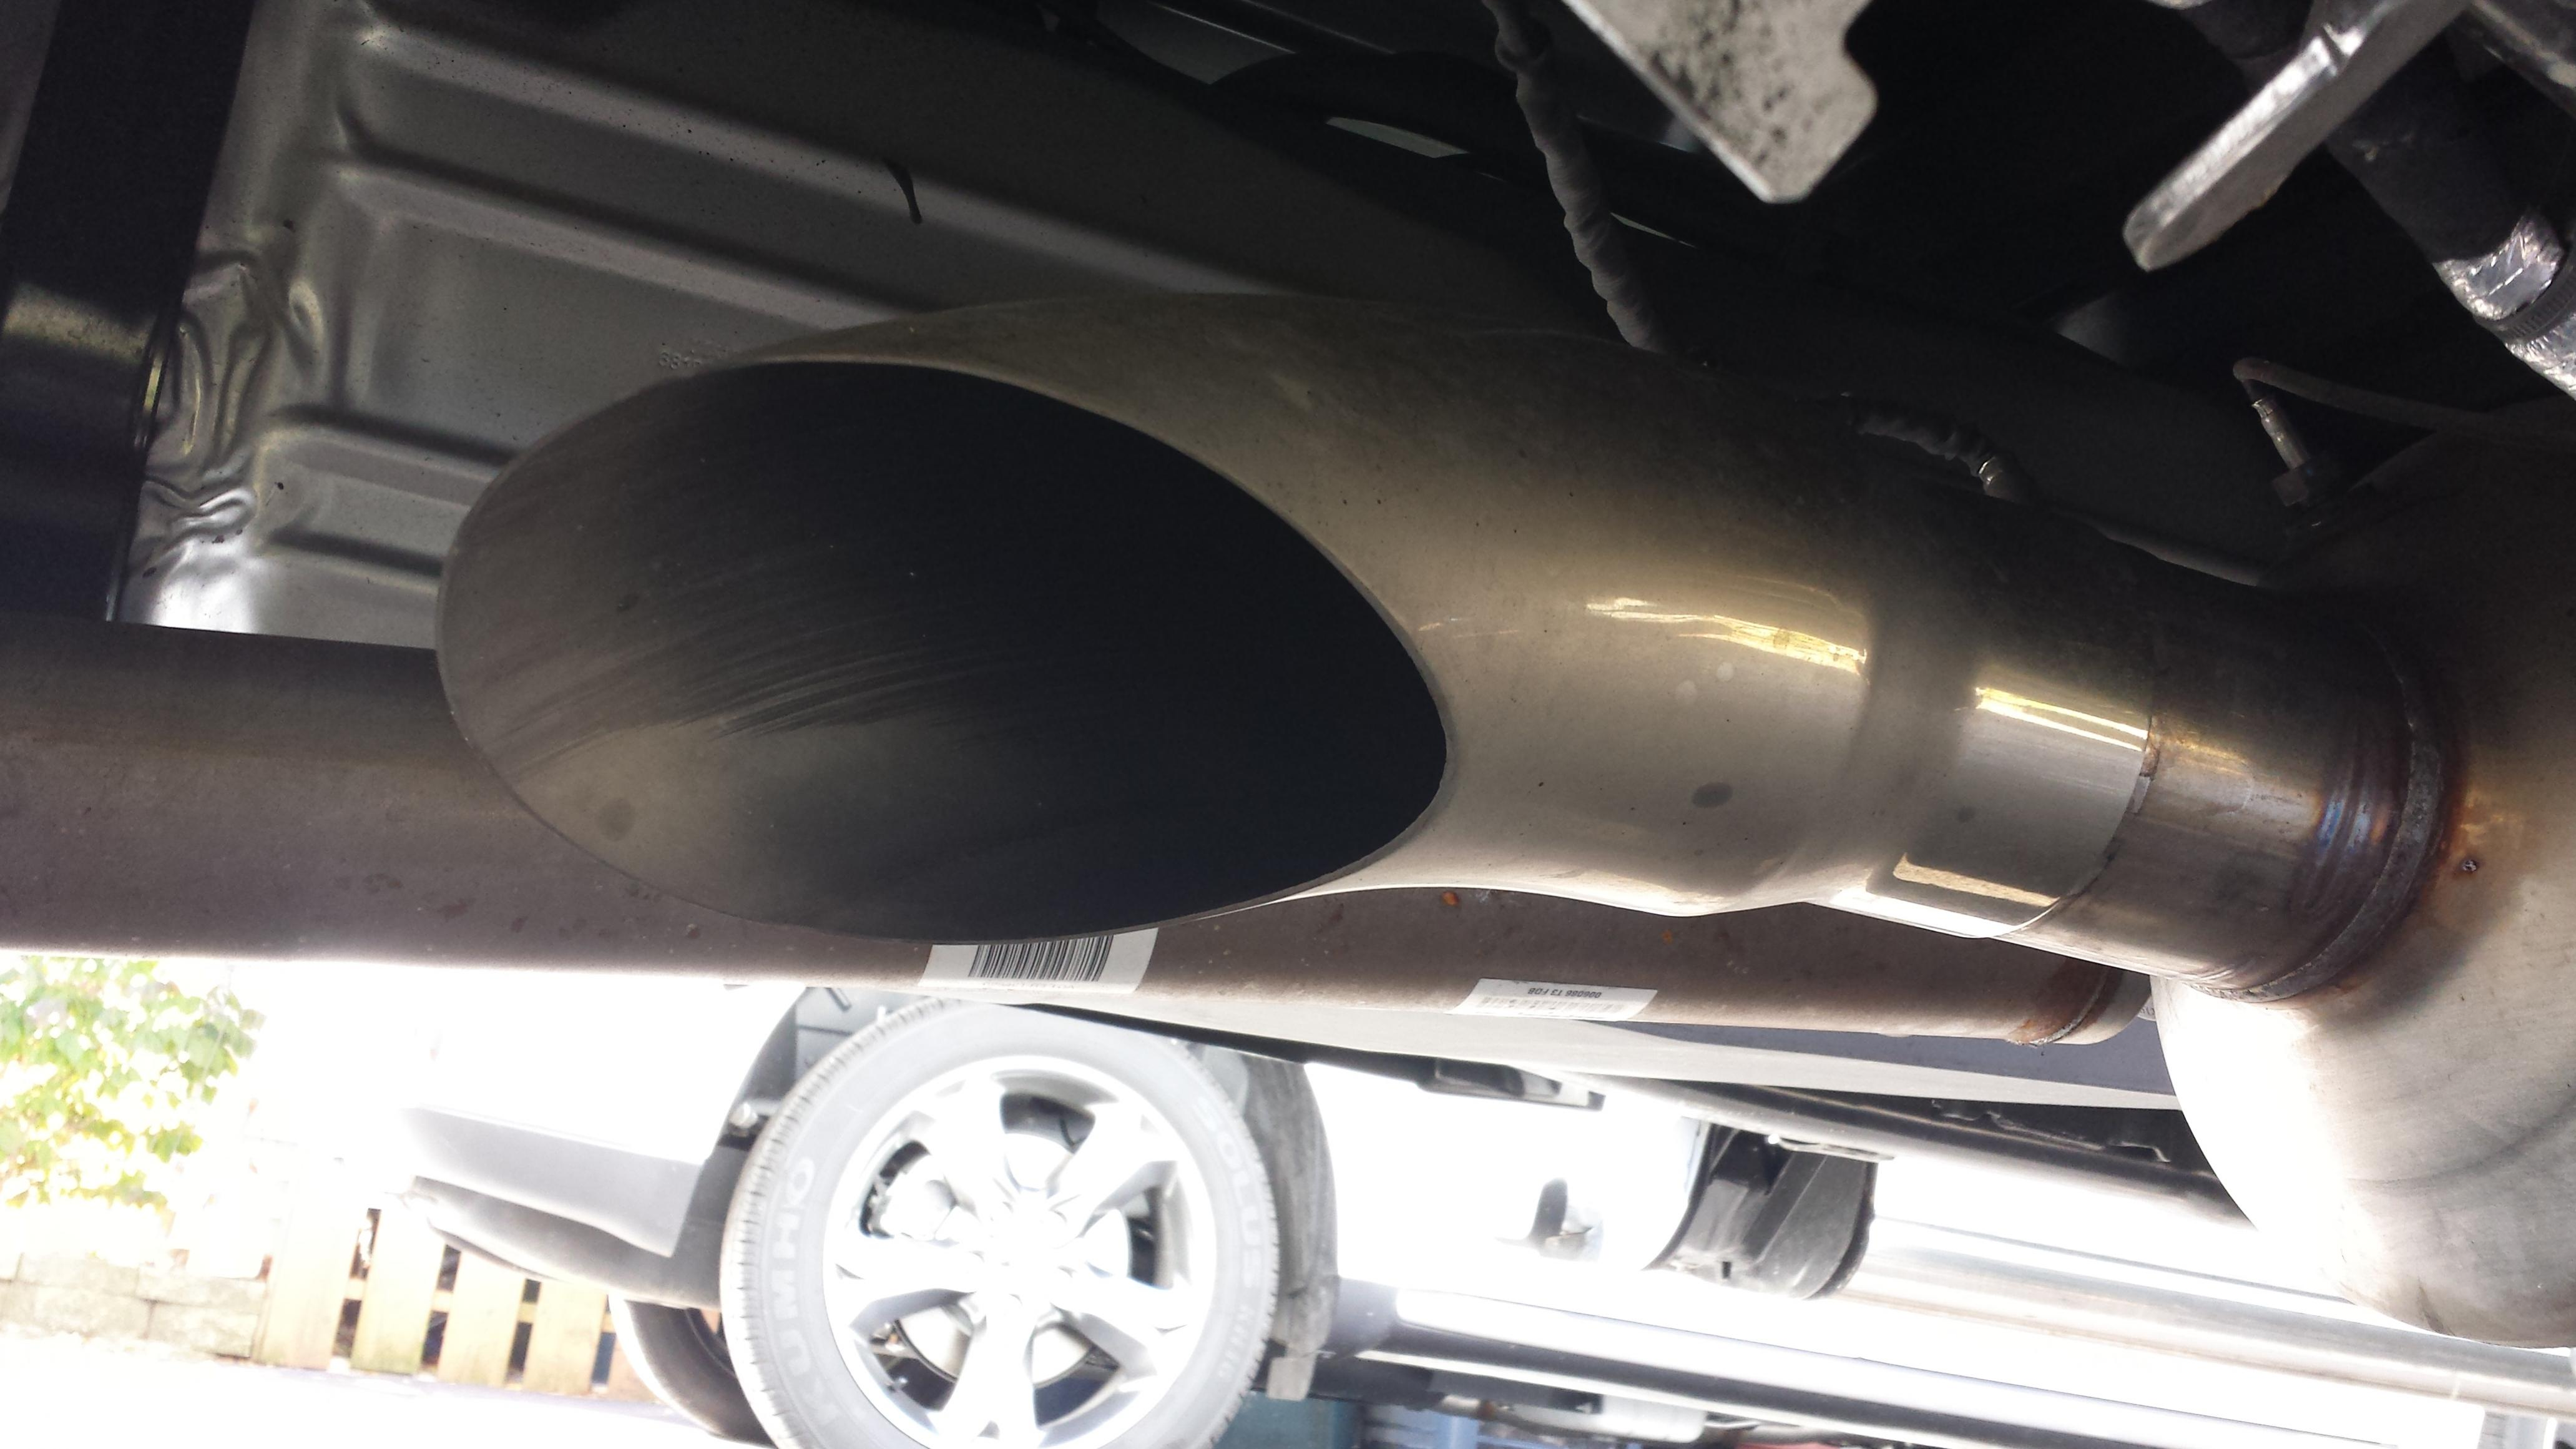 D Exhaust Tip Do You Prefer on Dodge Ram 3500 Cold Air Intake